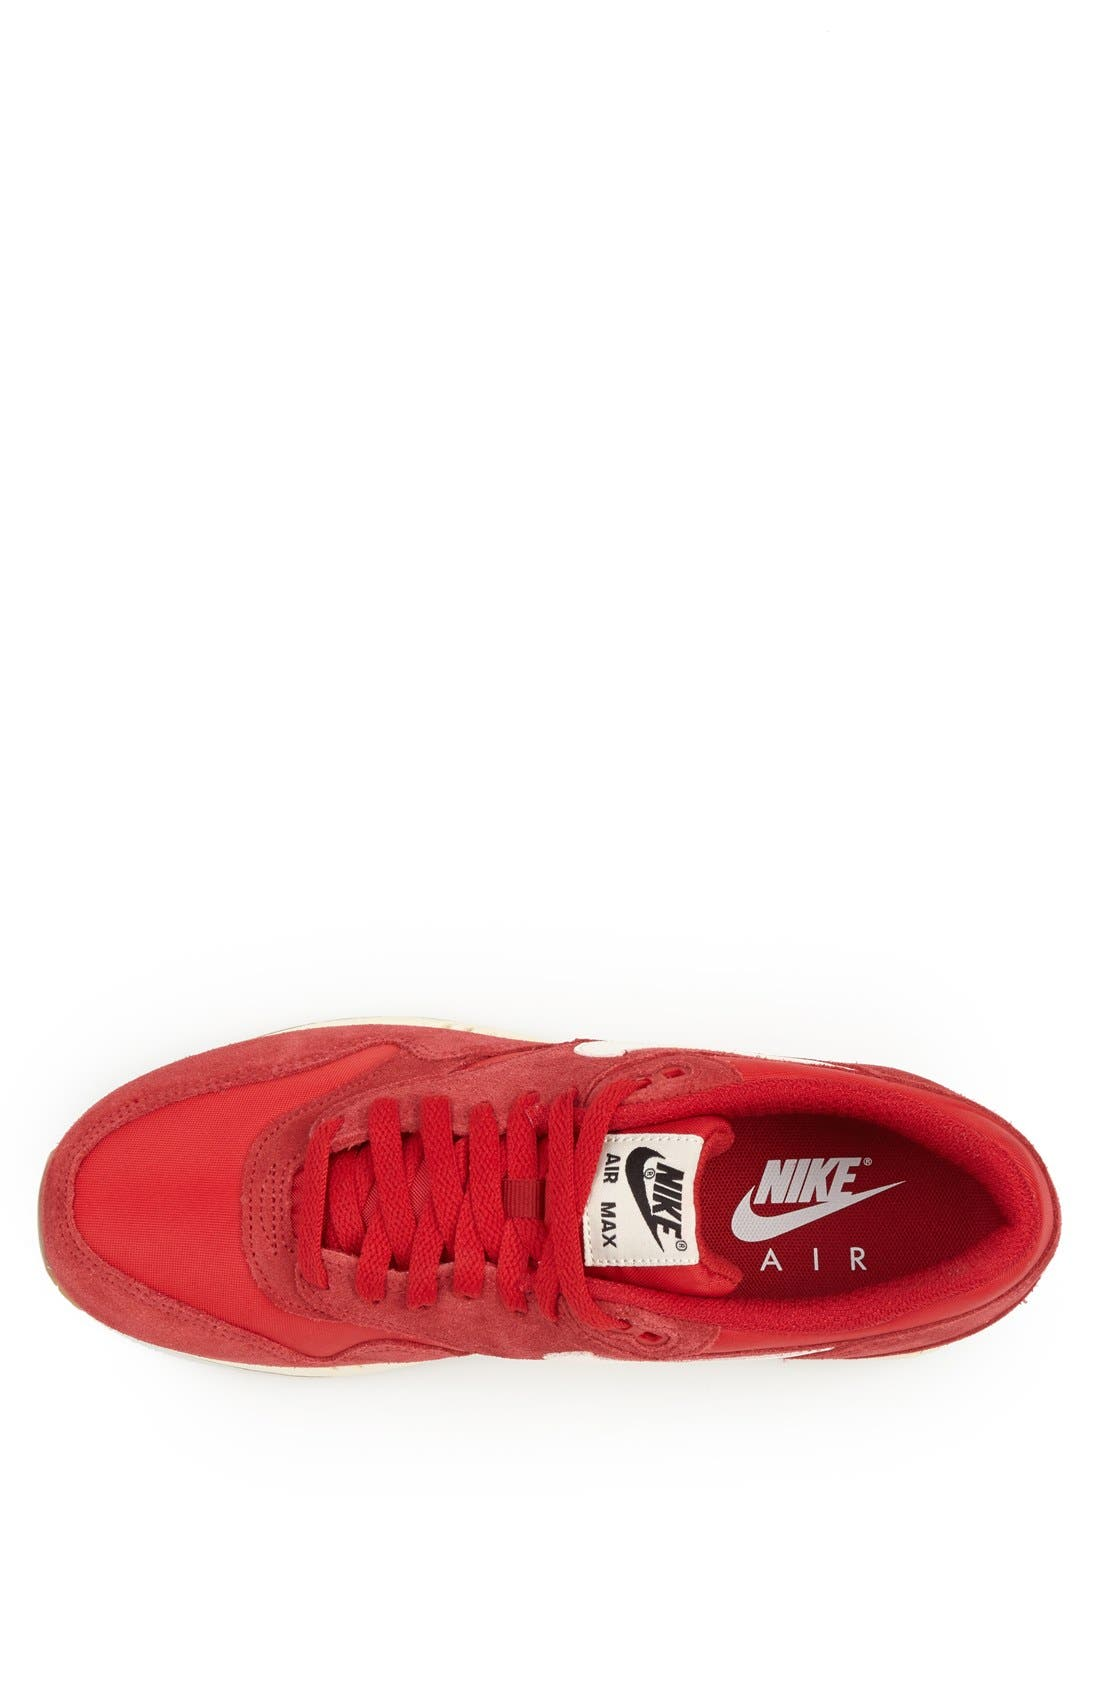 ,                             'Air Max 1 Essential' Sneaker,                             Alternate thumbnail 124, color,                             611